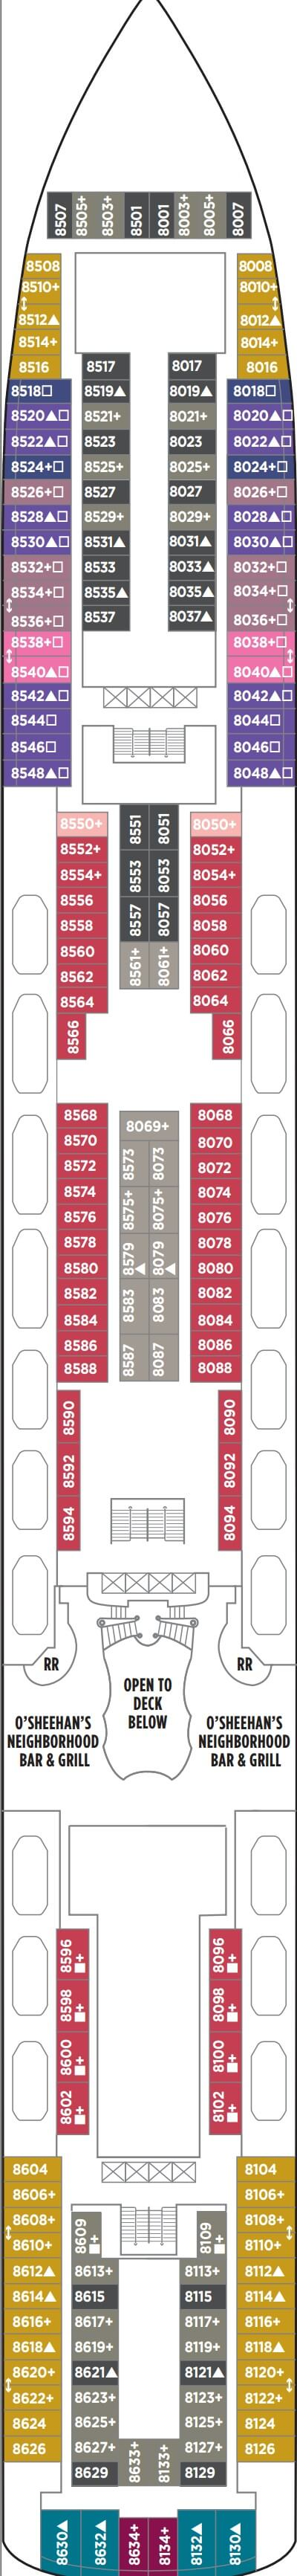 Norwegian Breakaway Deck 8 layout